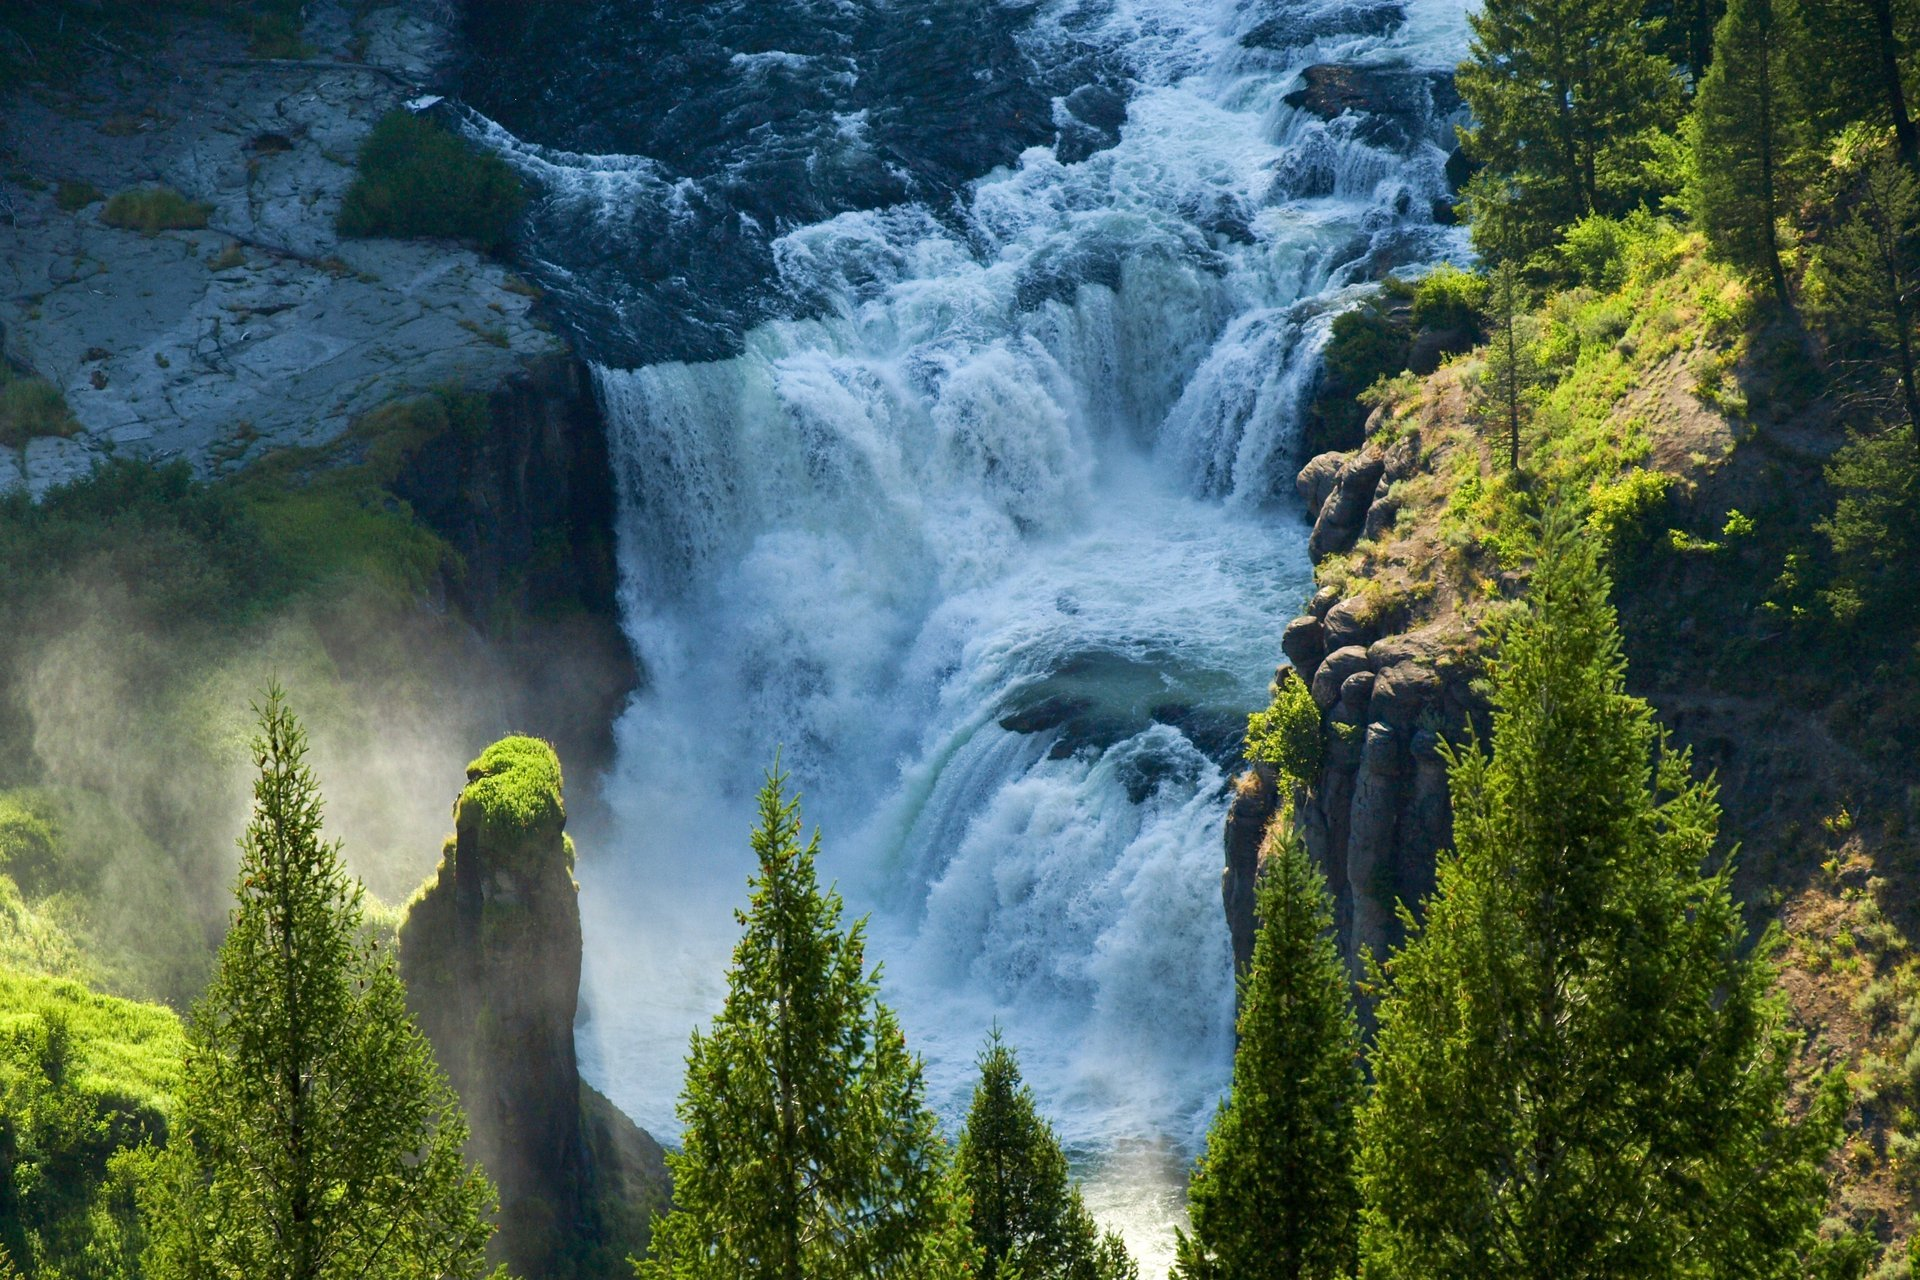 Mesa Falls in Idaho 2020 - Best Time